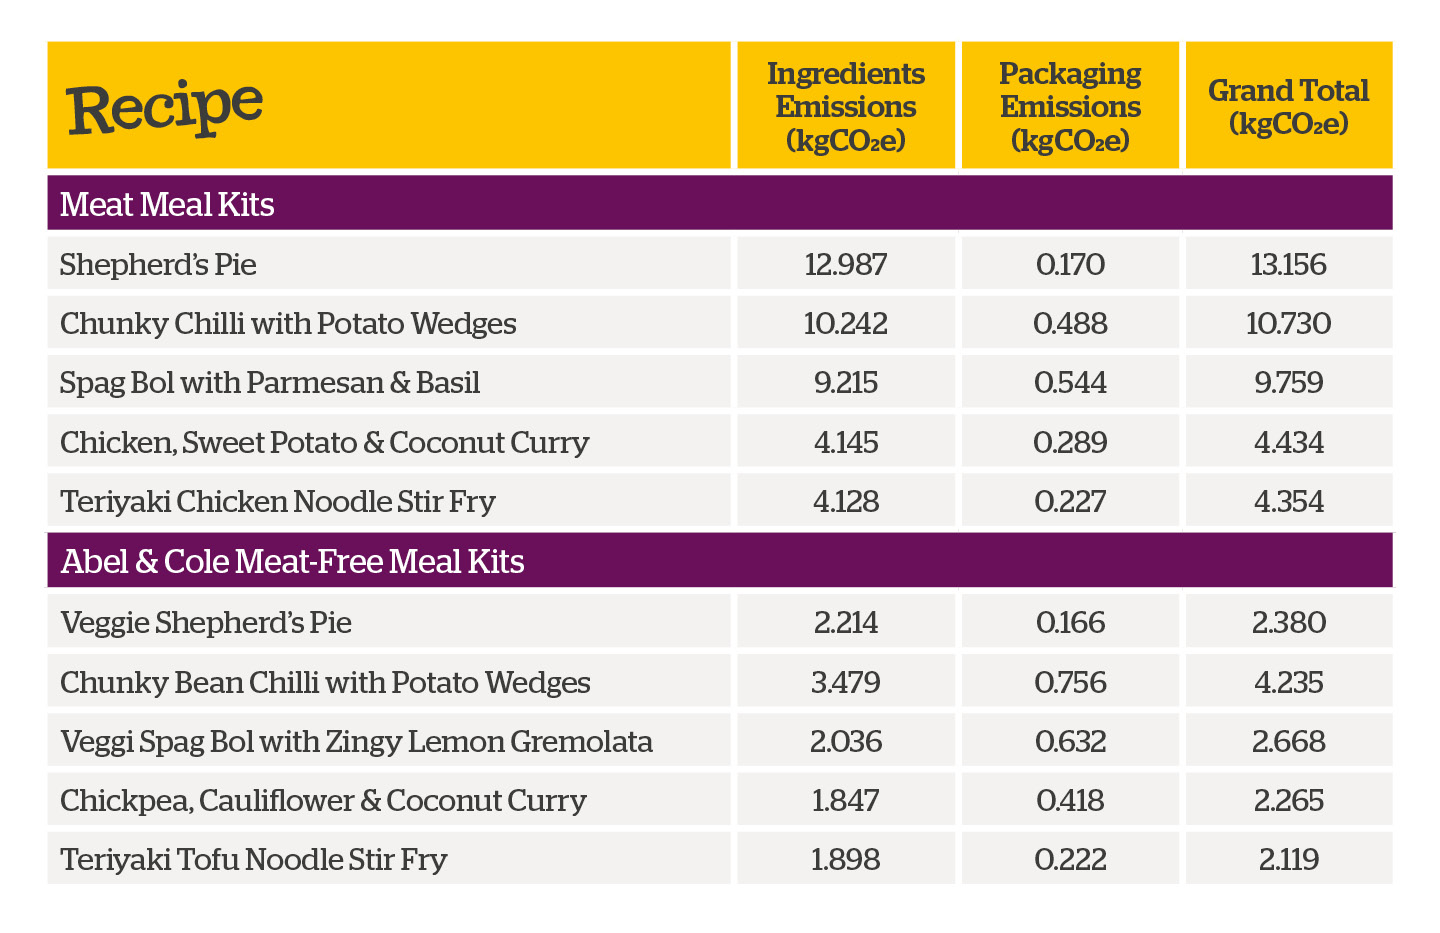 Table of carbon emissions for meat and meat-free meals